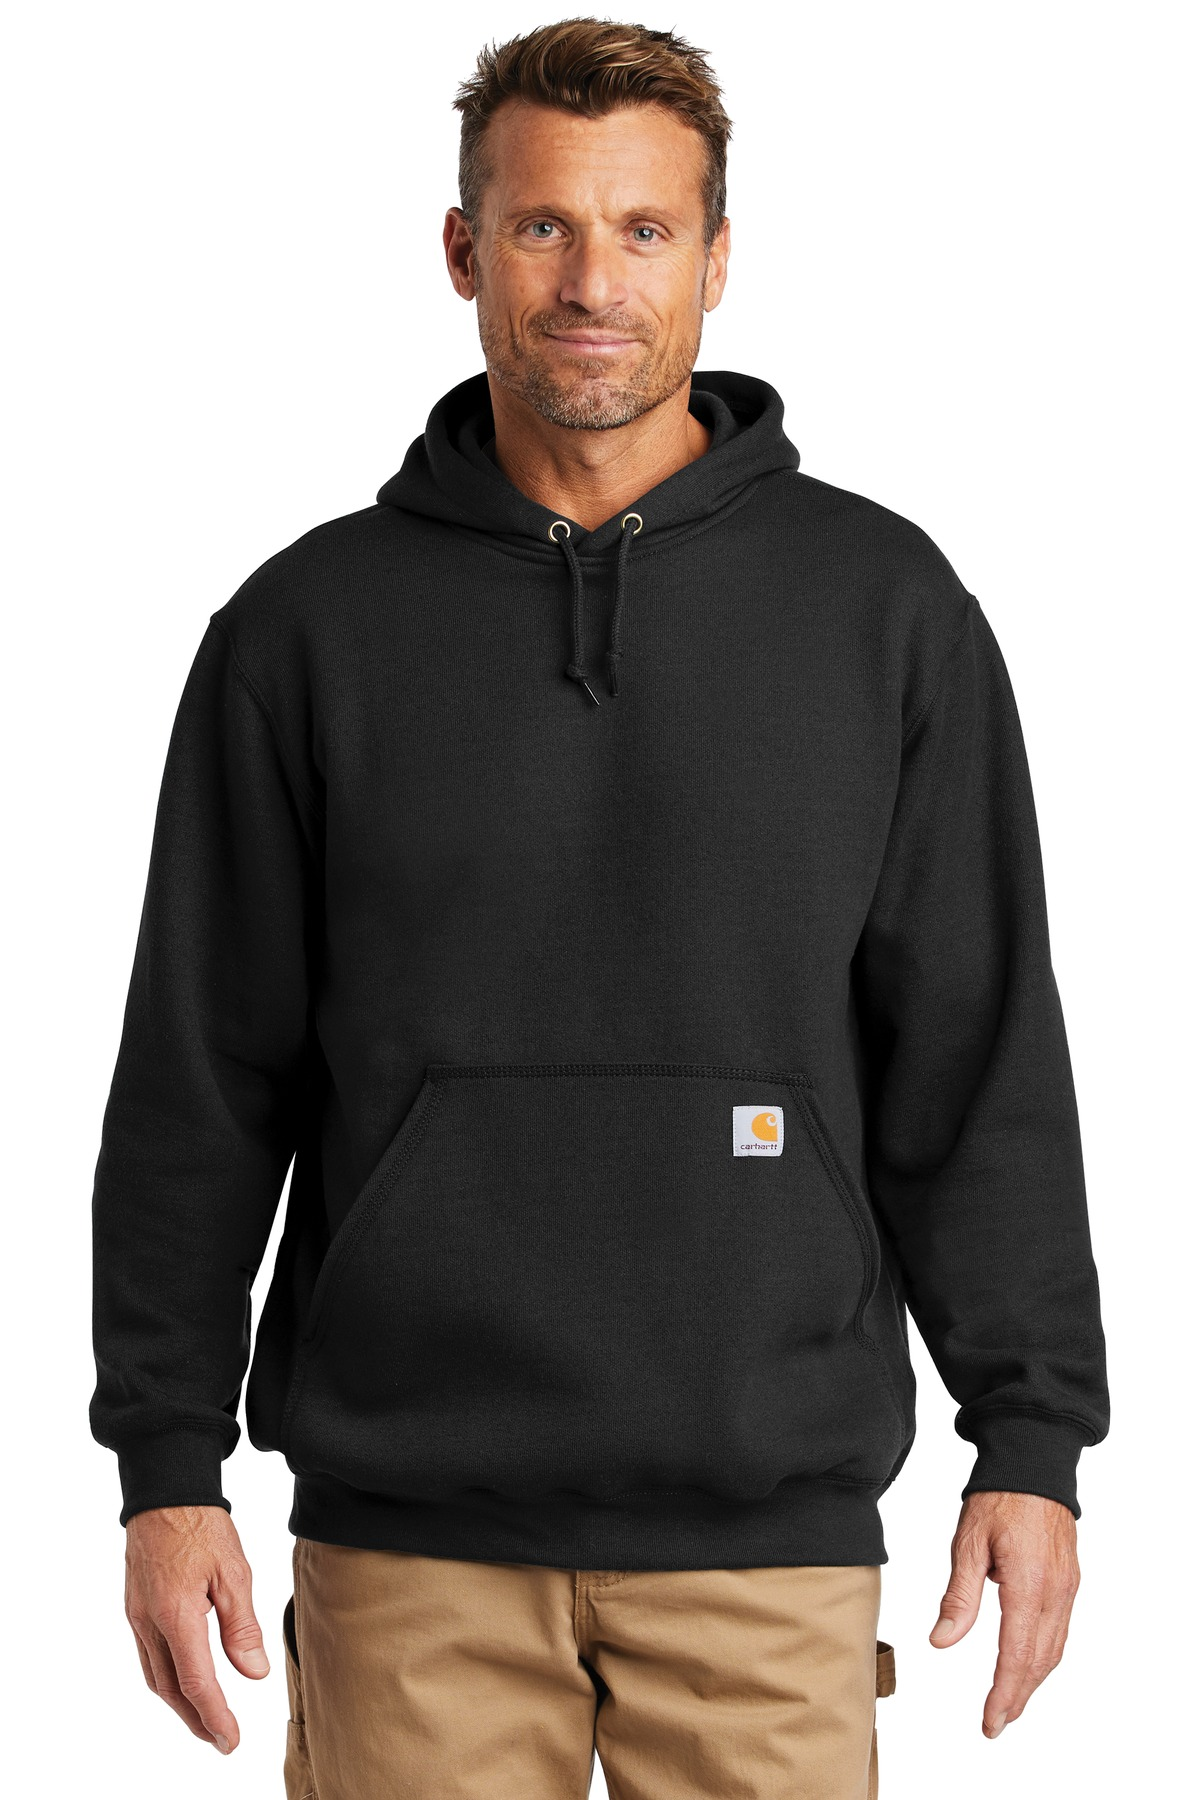 Carhartt  ®  Midweight Hooded Sweatshirt. CTK121 - Black